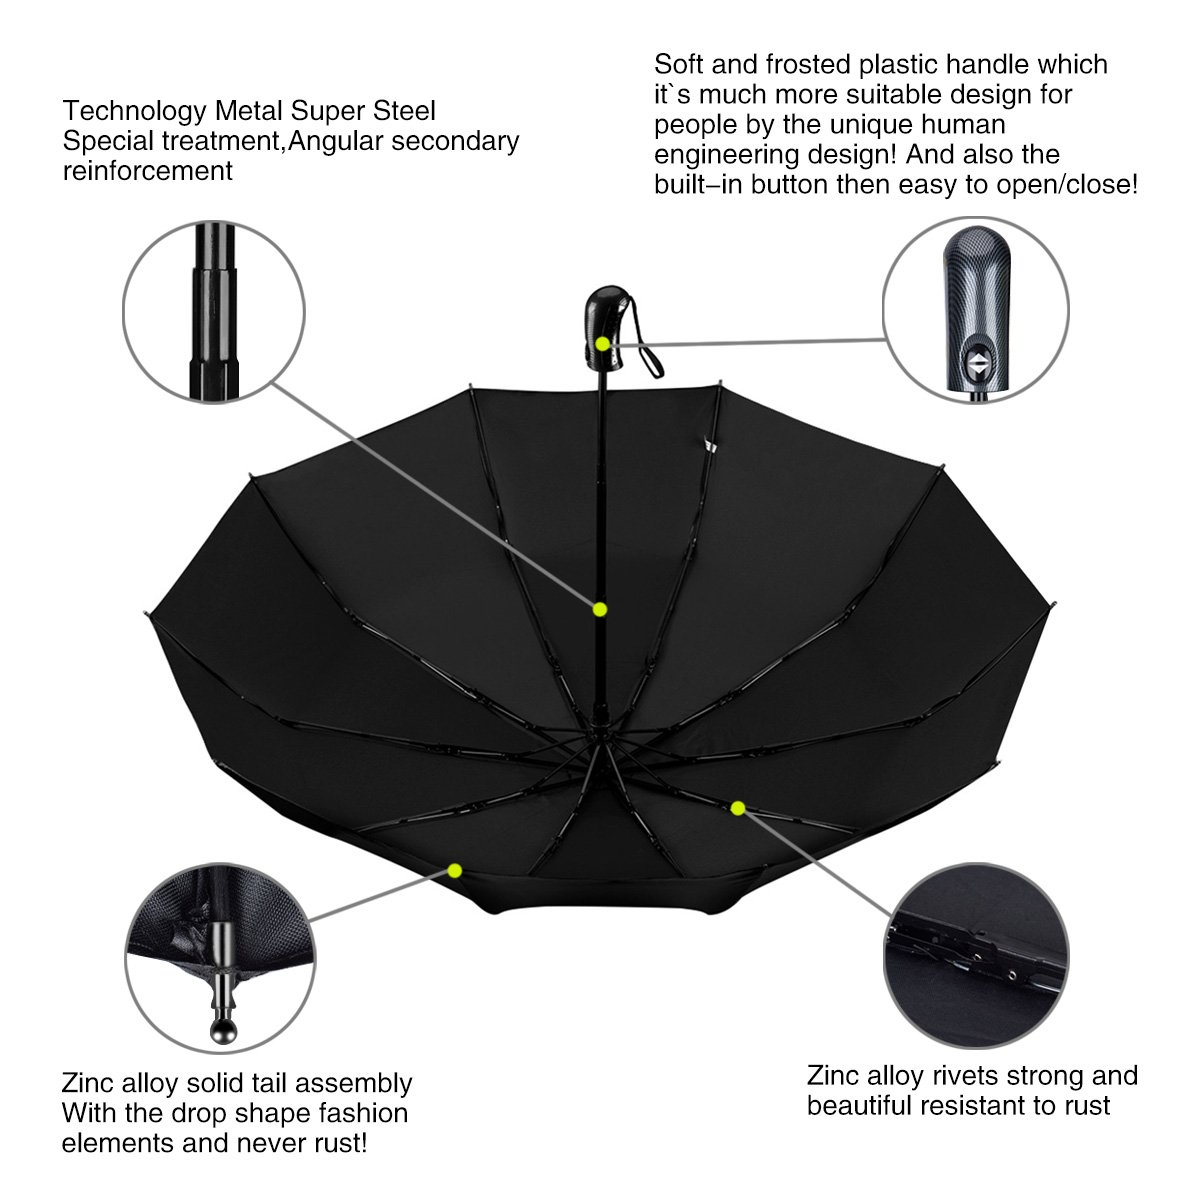 Umbrella, Cozyswan Travel Umbrella 210T Automatic Folding Umbrella with Sunscreen Function,Black (10 Ribs) by COZYSWAN (Image #2)